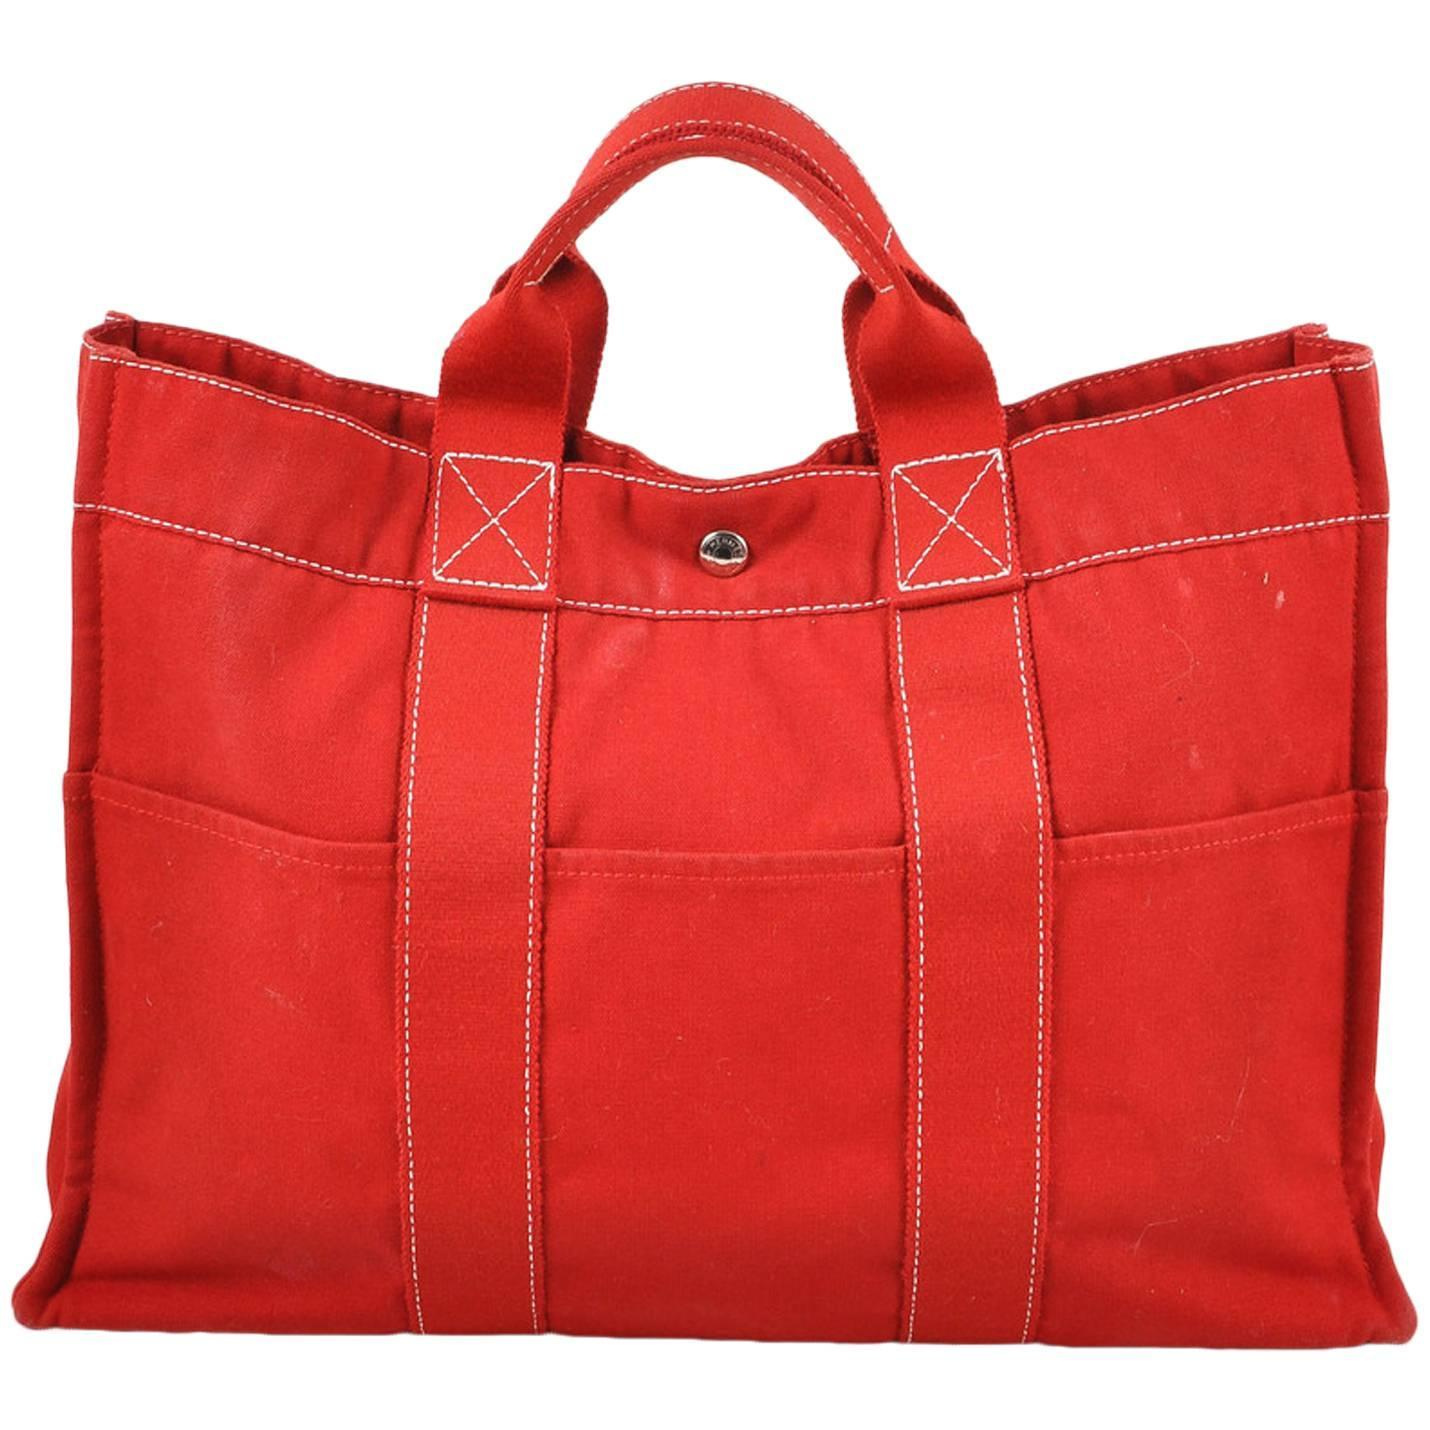 authentic hermes bag - Hermes Red Canvas Beach Tote Bag For Sale at 1stdibs